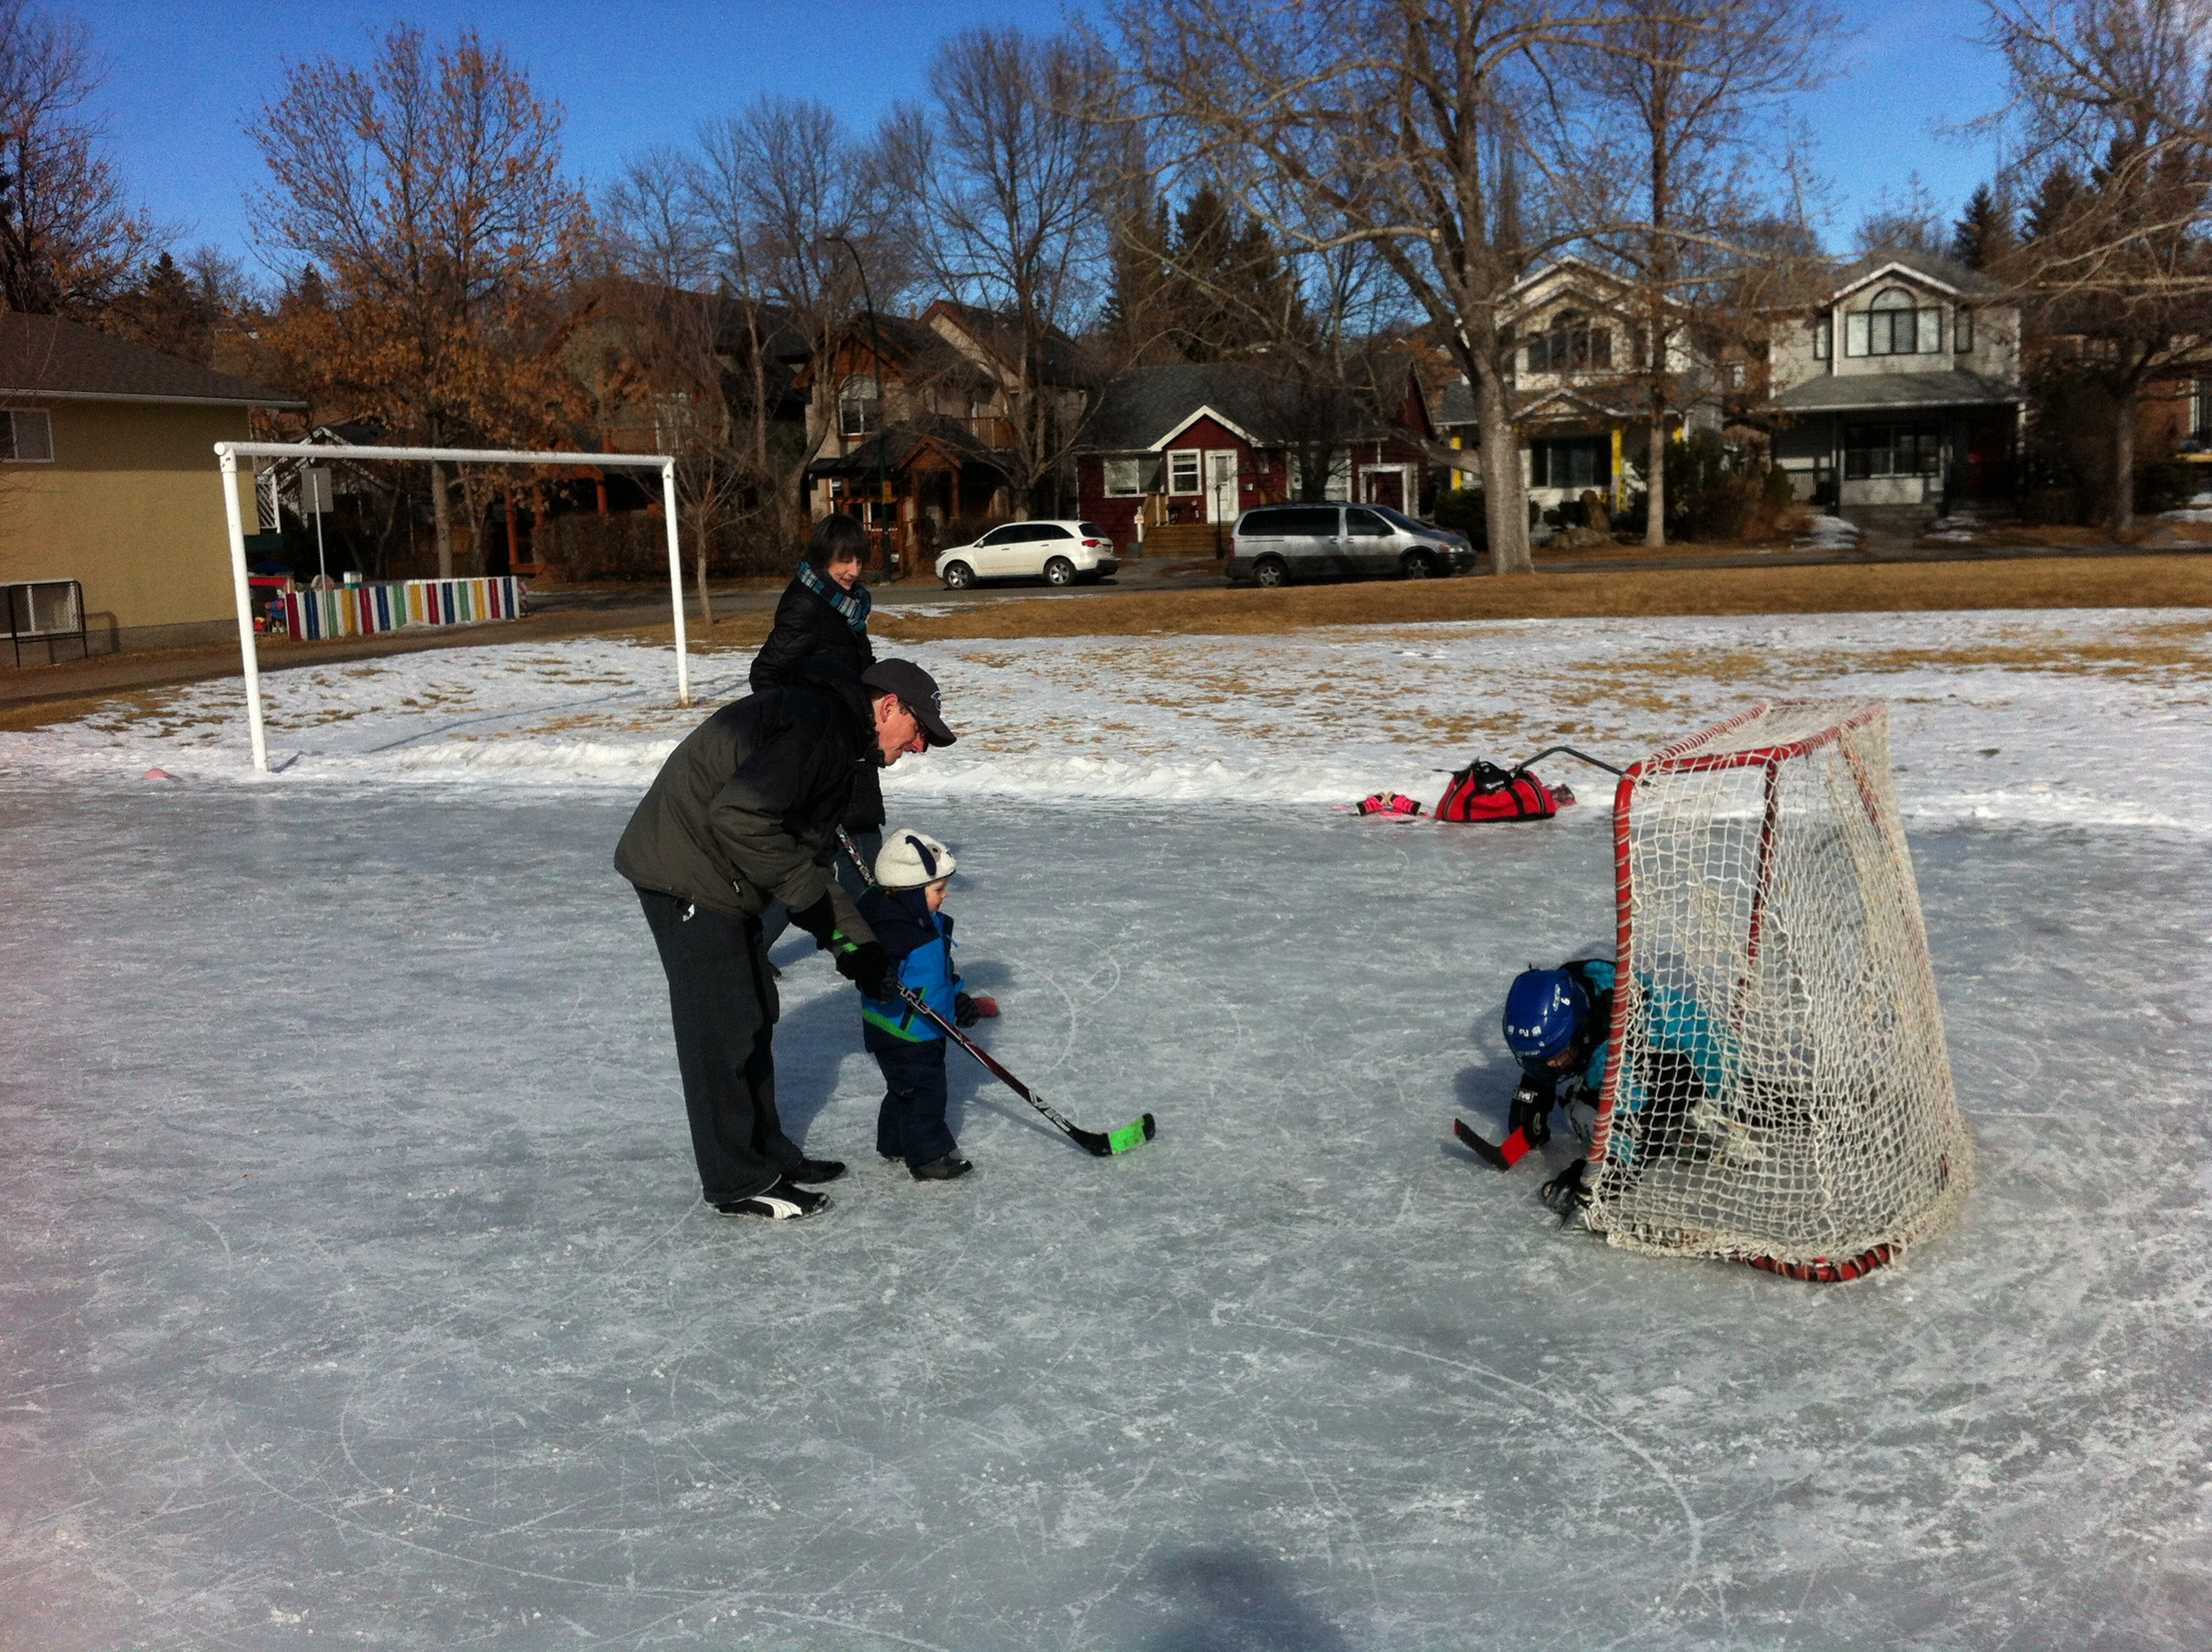 A local rink is used by thousands each winter to learn to skate and play hockey. Often they are next to summer playgrounds turning the space into year-round park.